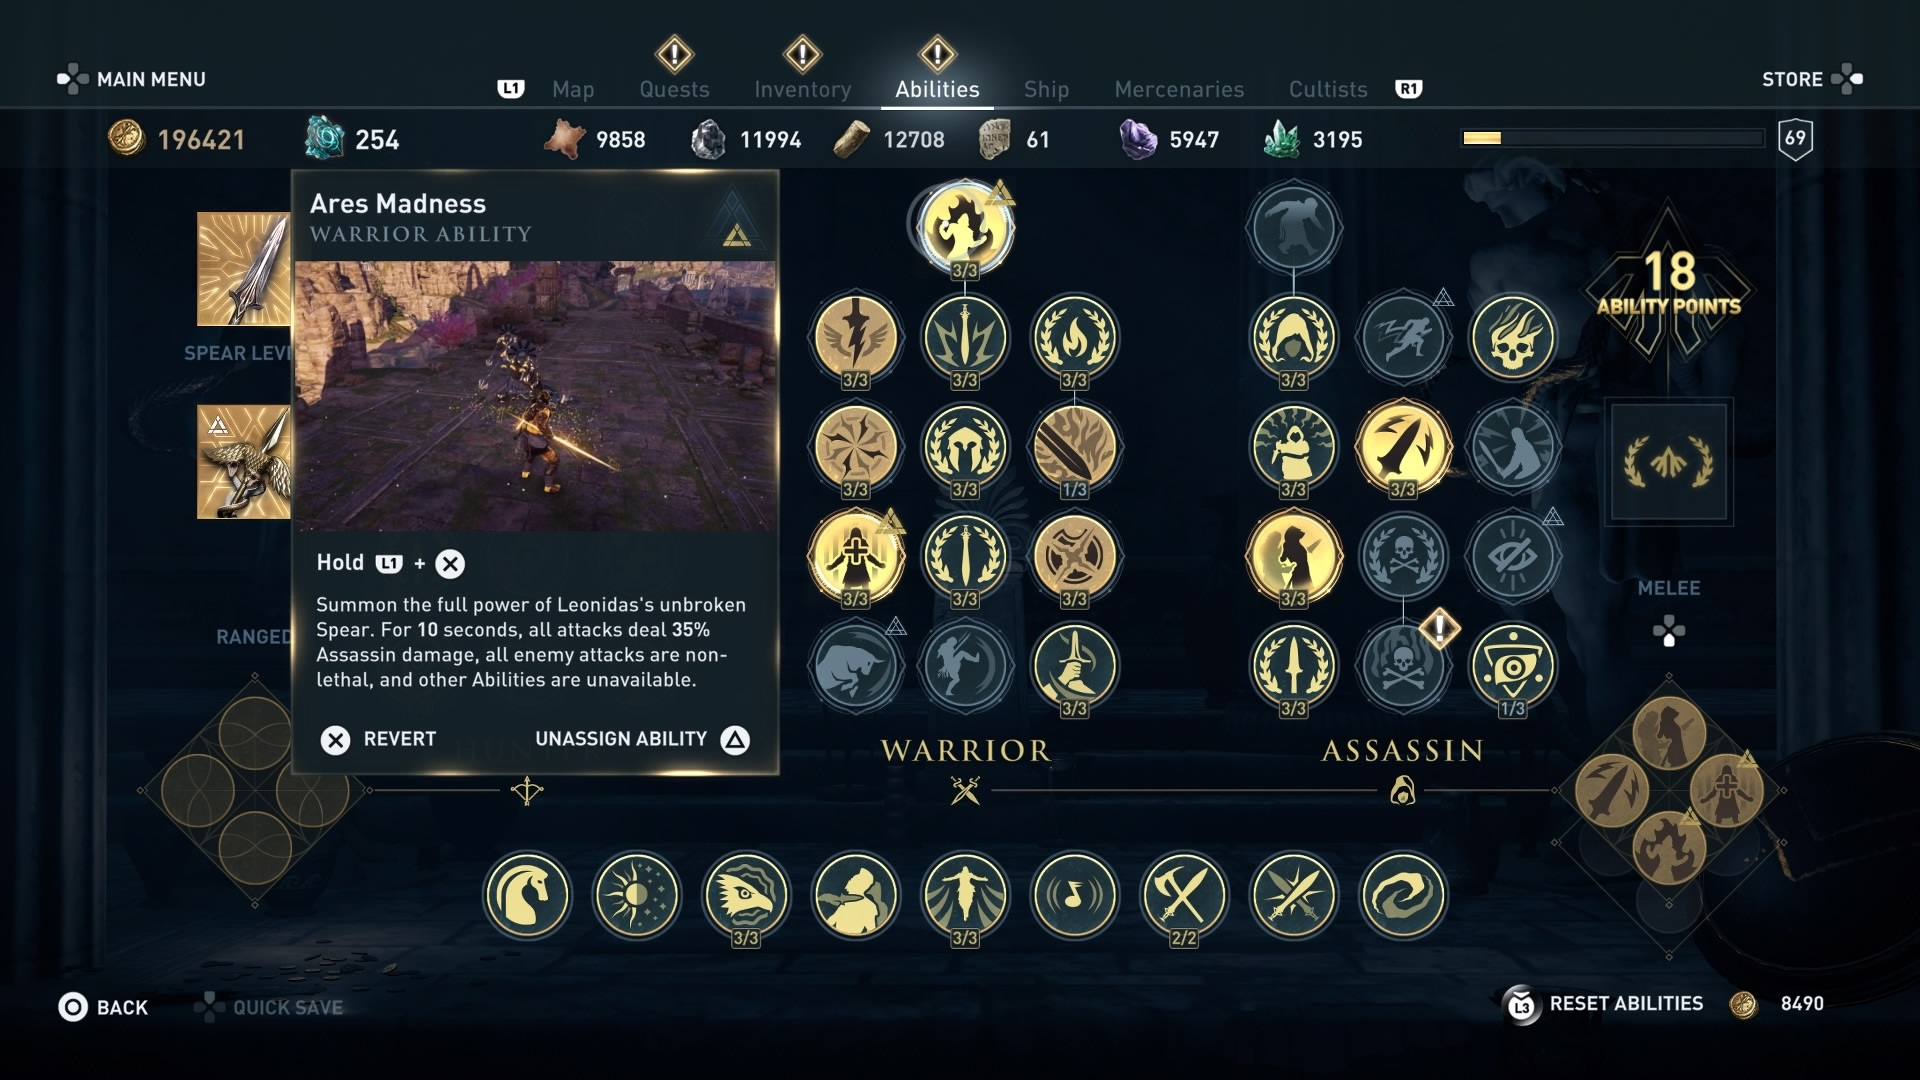 Fate of Atlantis abilities